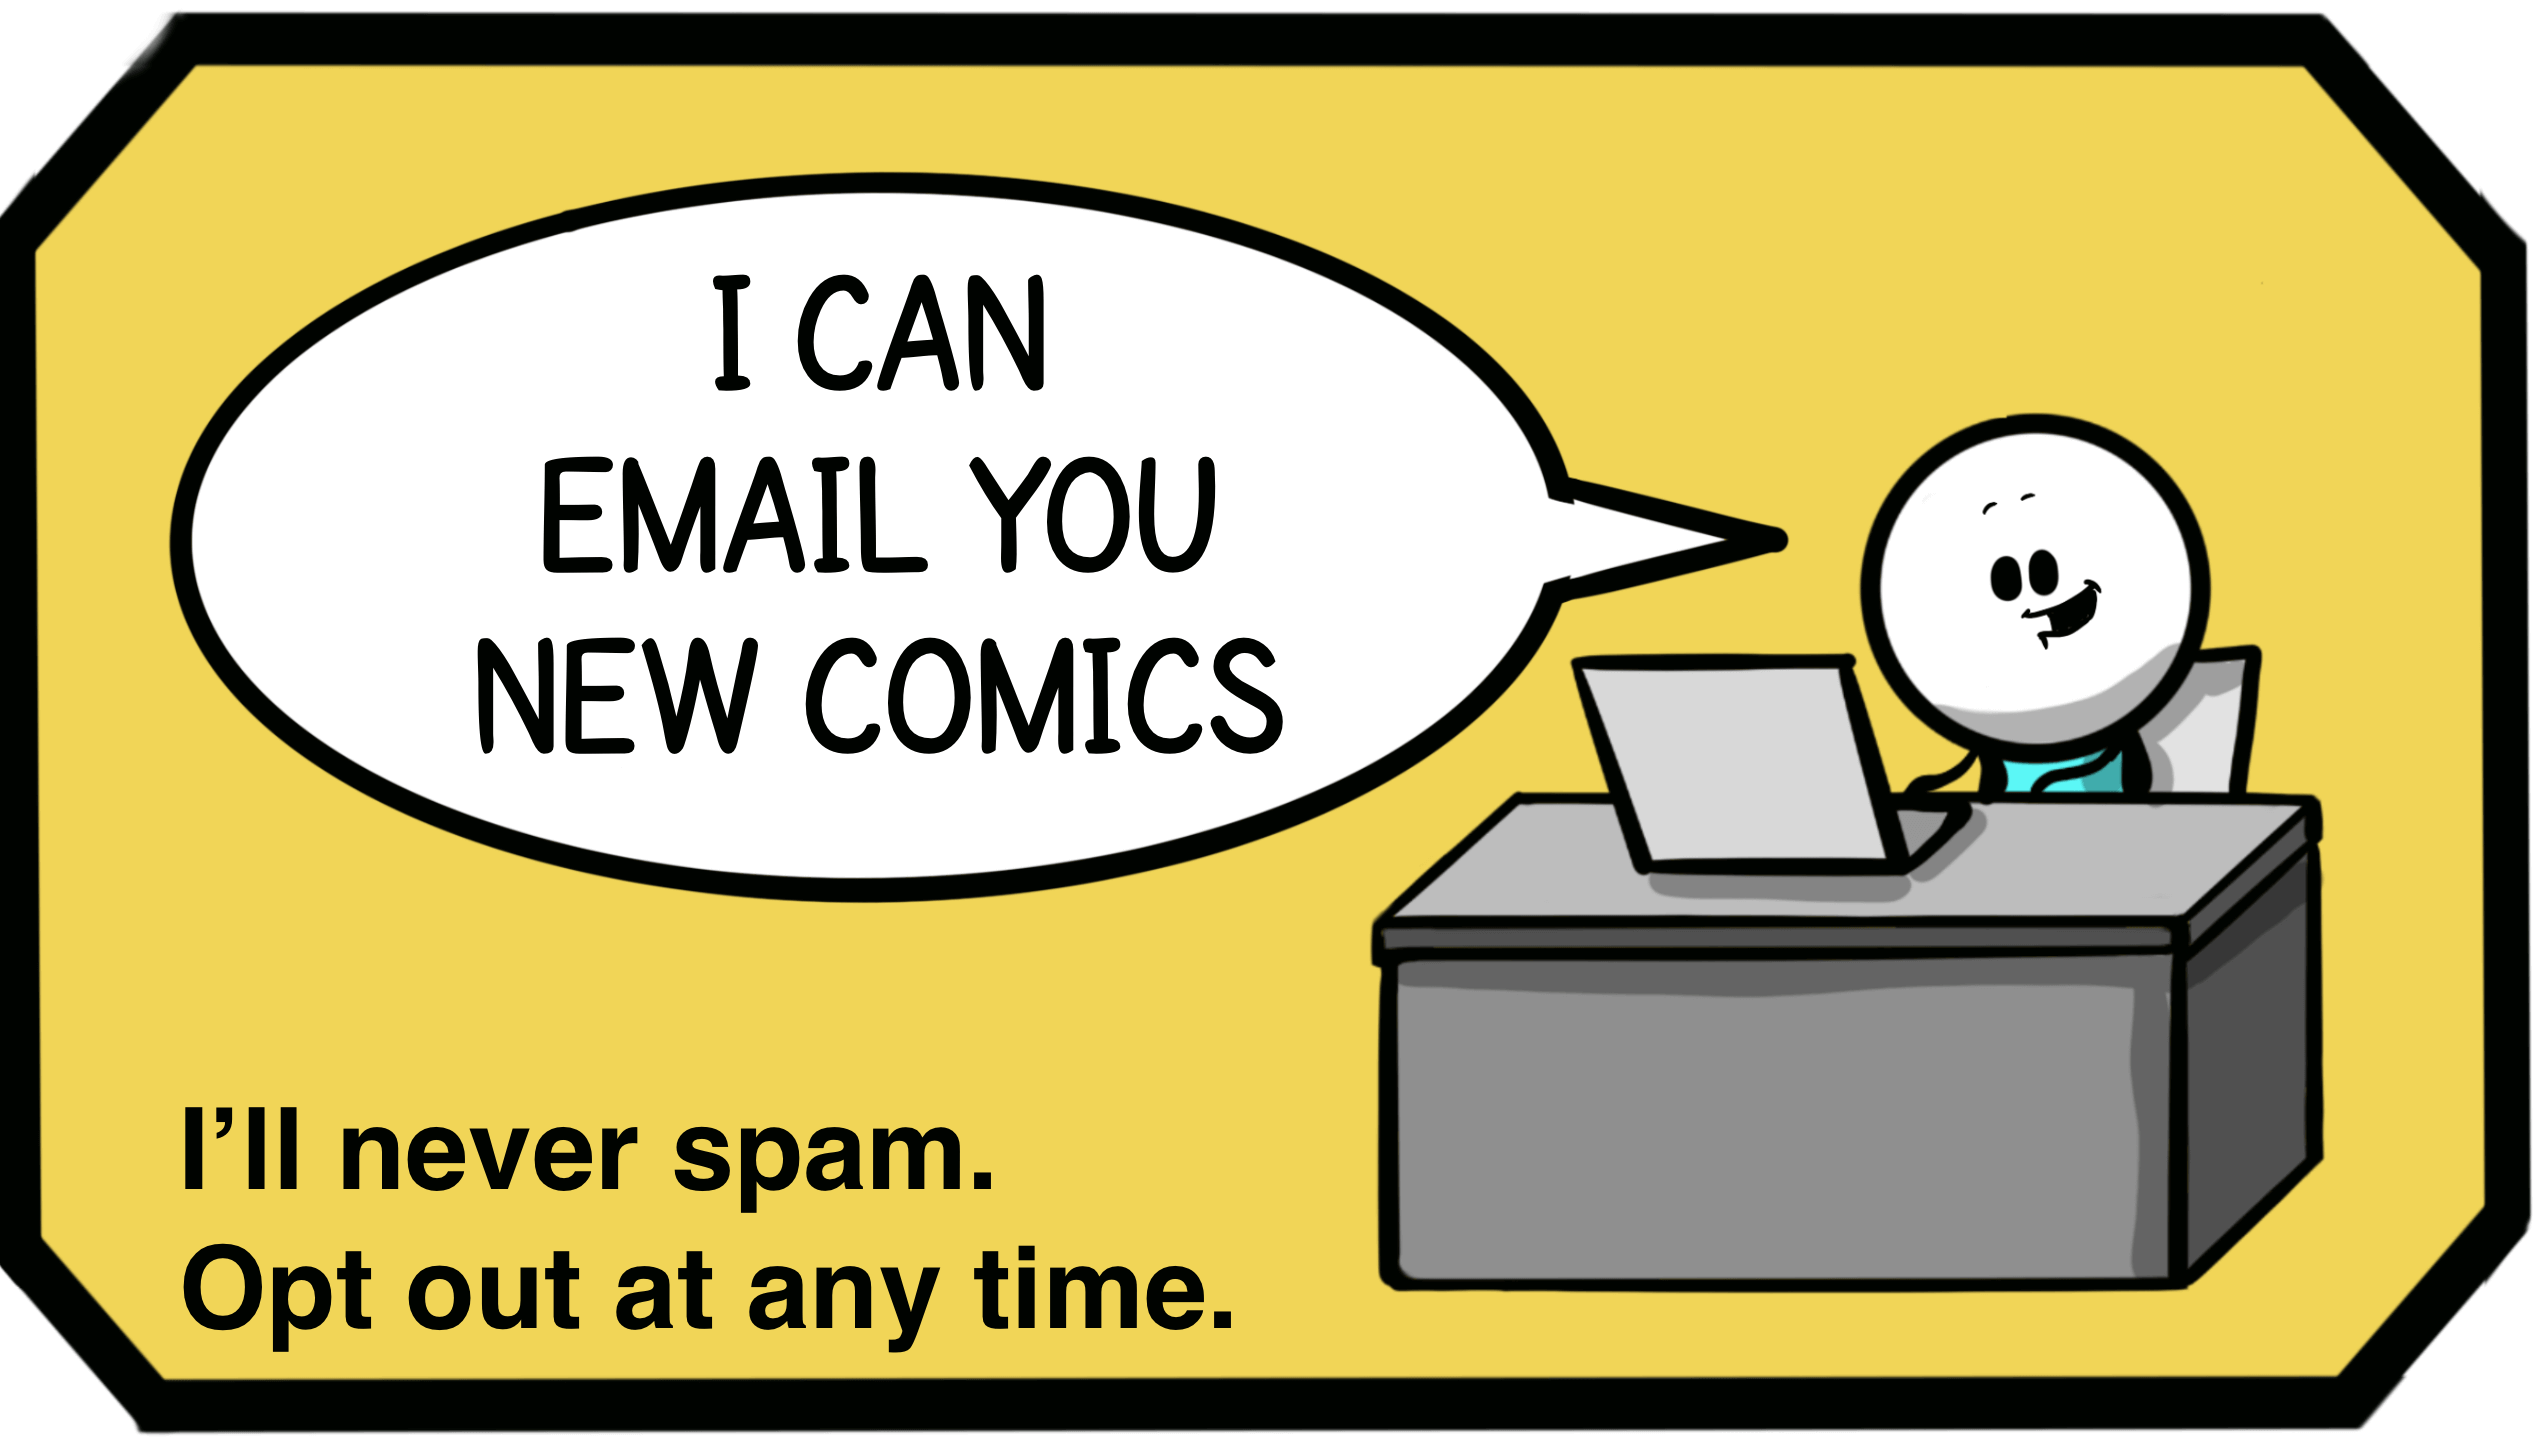 Enjoying the comics? Get them in your inbox. Join the newsletter